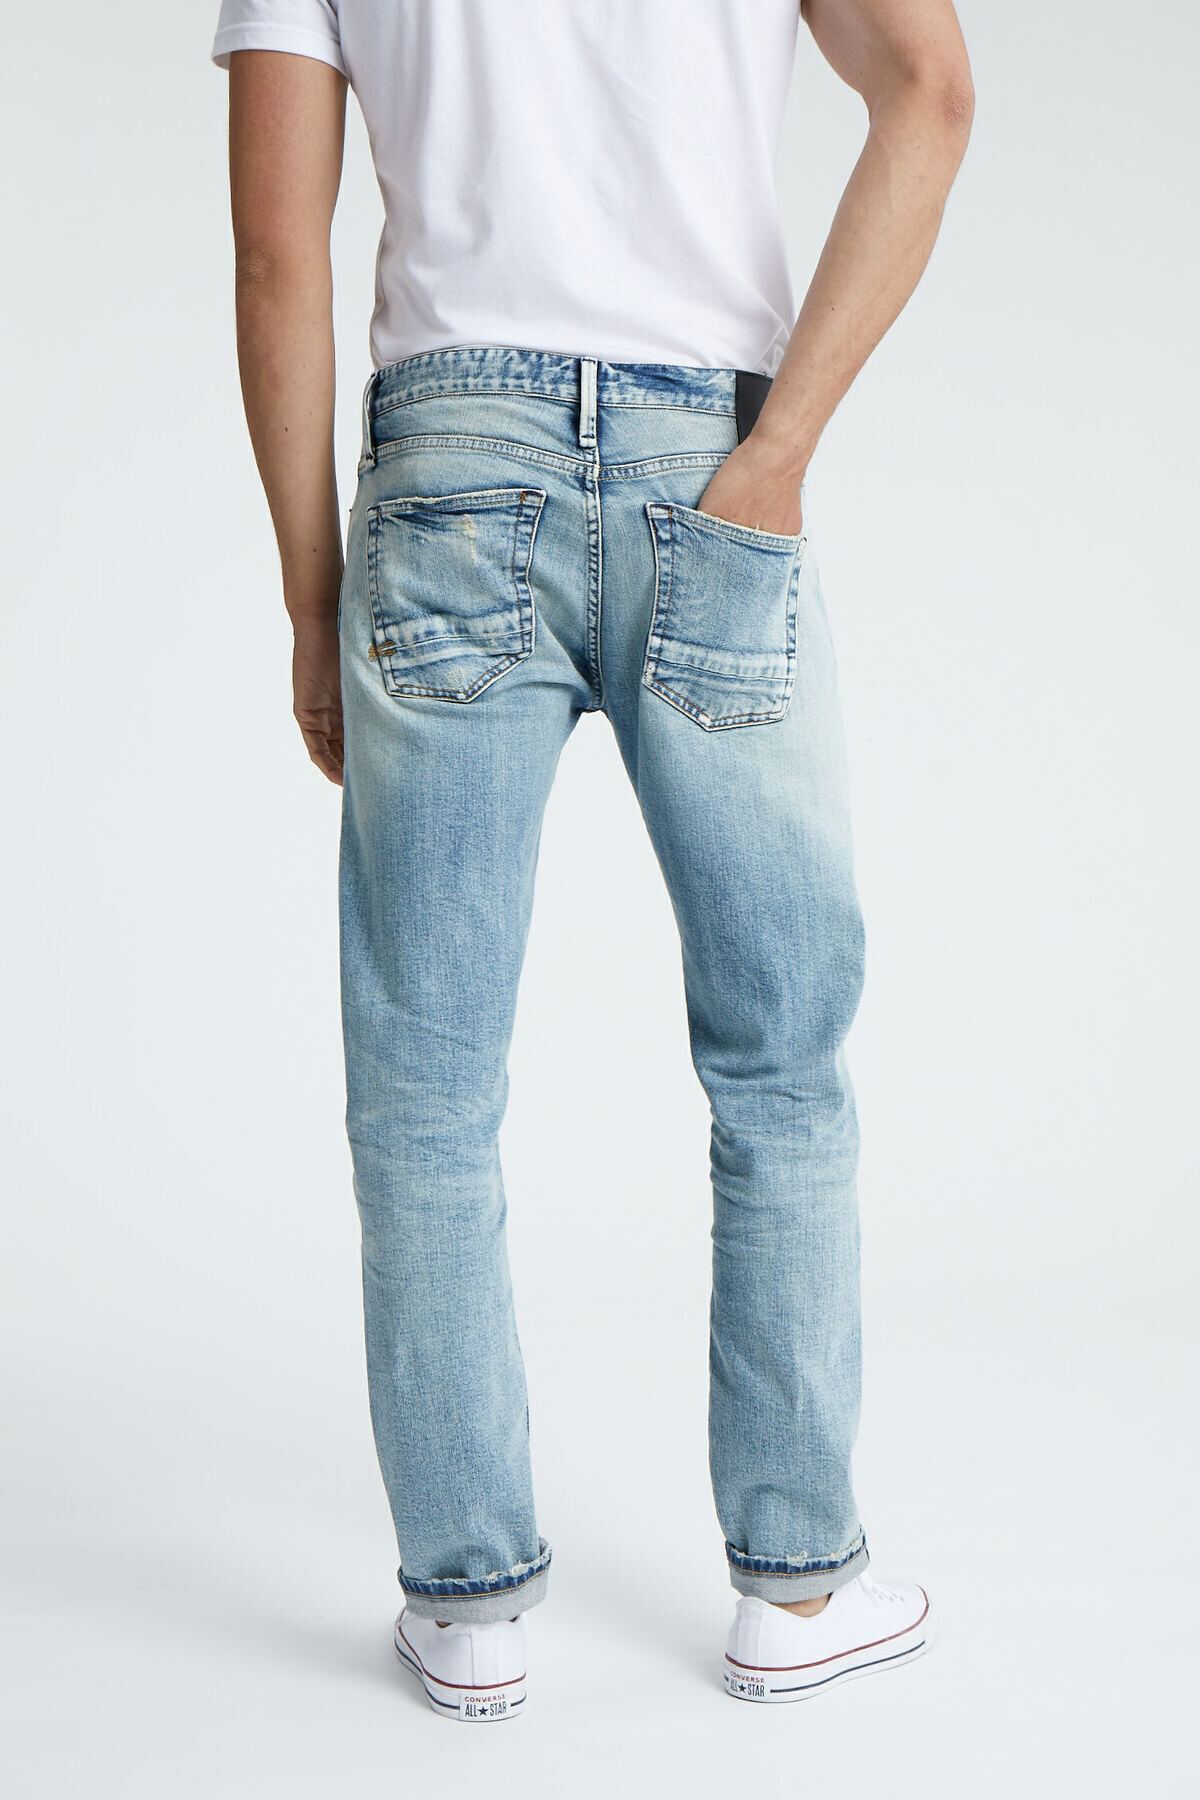 RAZOR Five-Year Selvedge Denim - Slim Fit